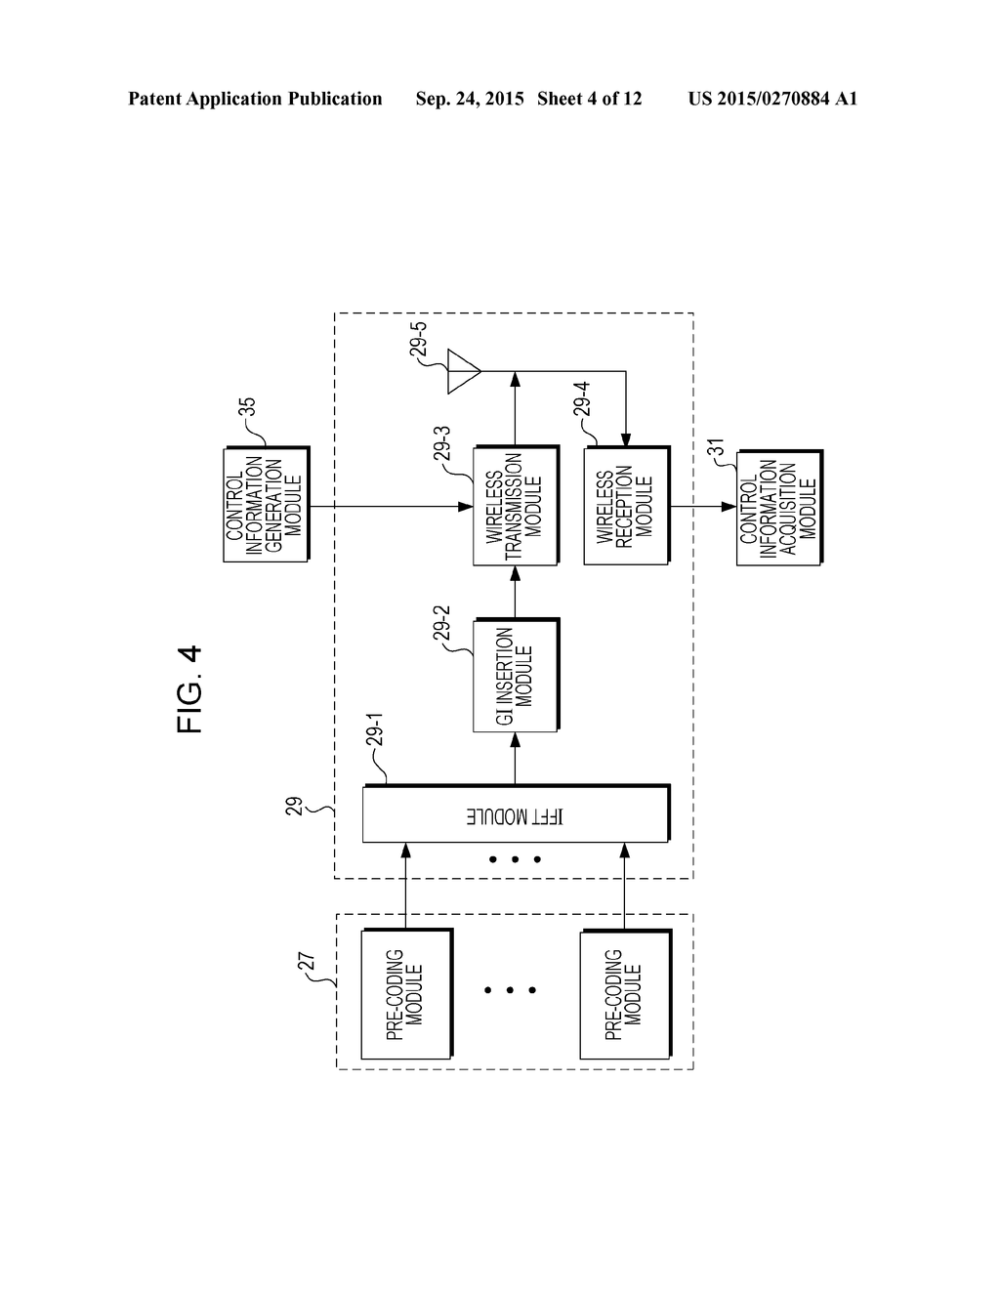 medium resolution of terminal device base station device wireless communication system reception method and integrated circuit diagram schematic and image 05